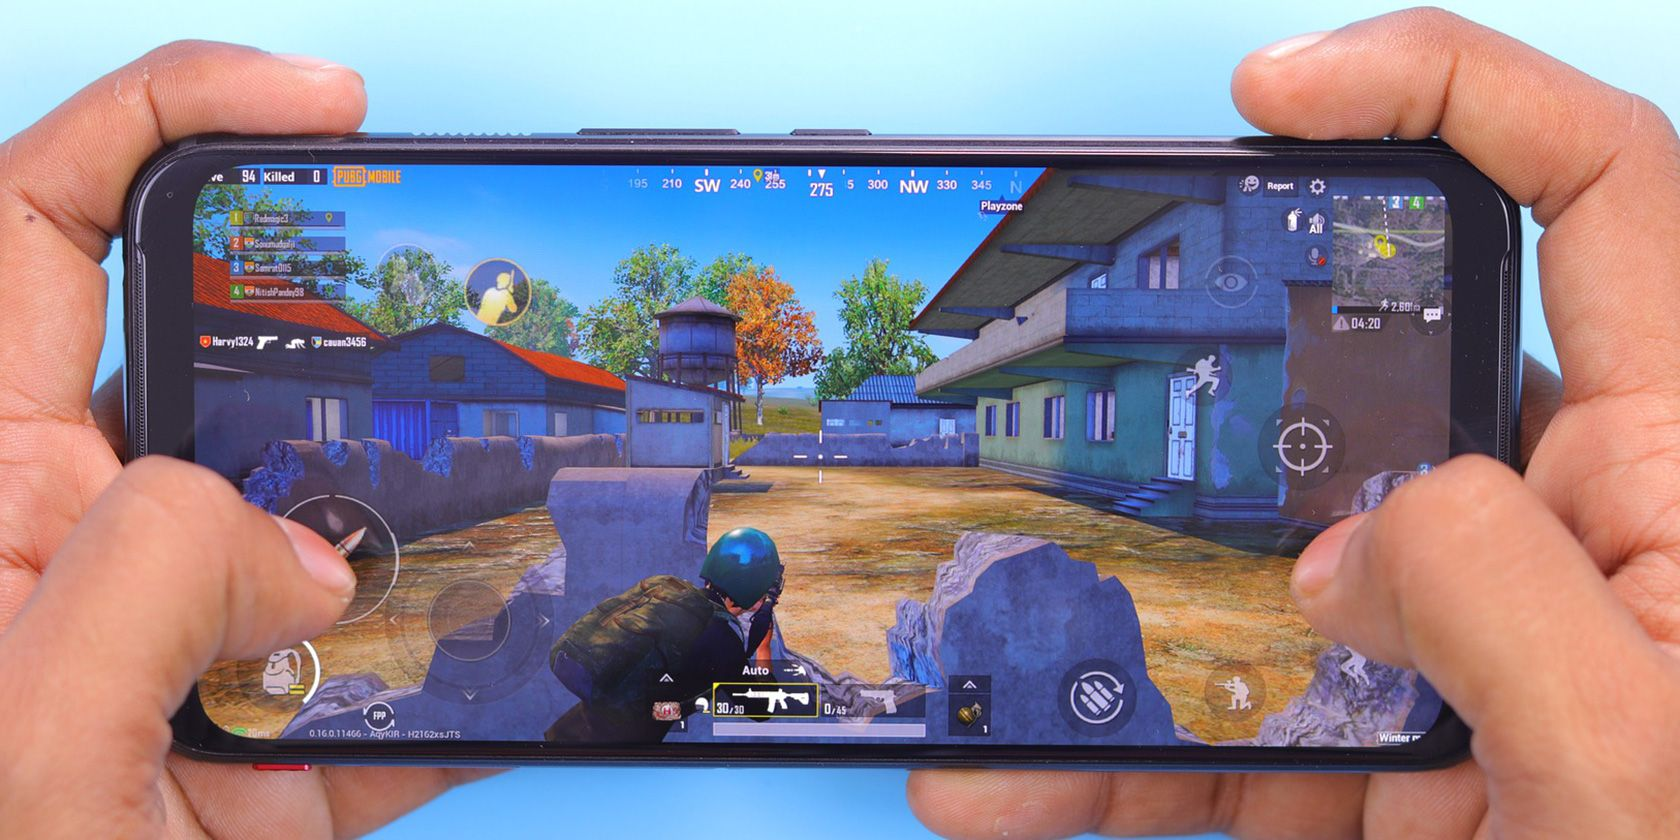 How to Enable Gameplay on an Android Phone?